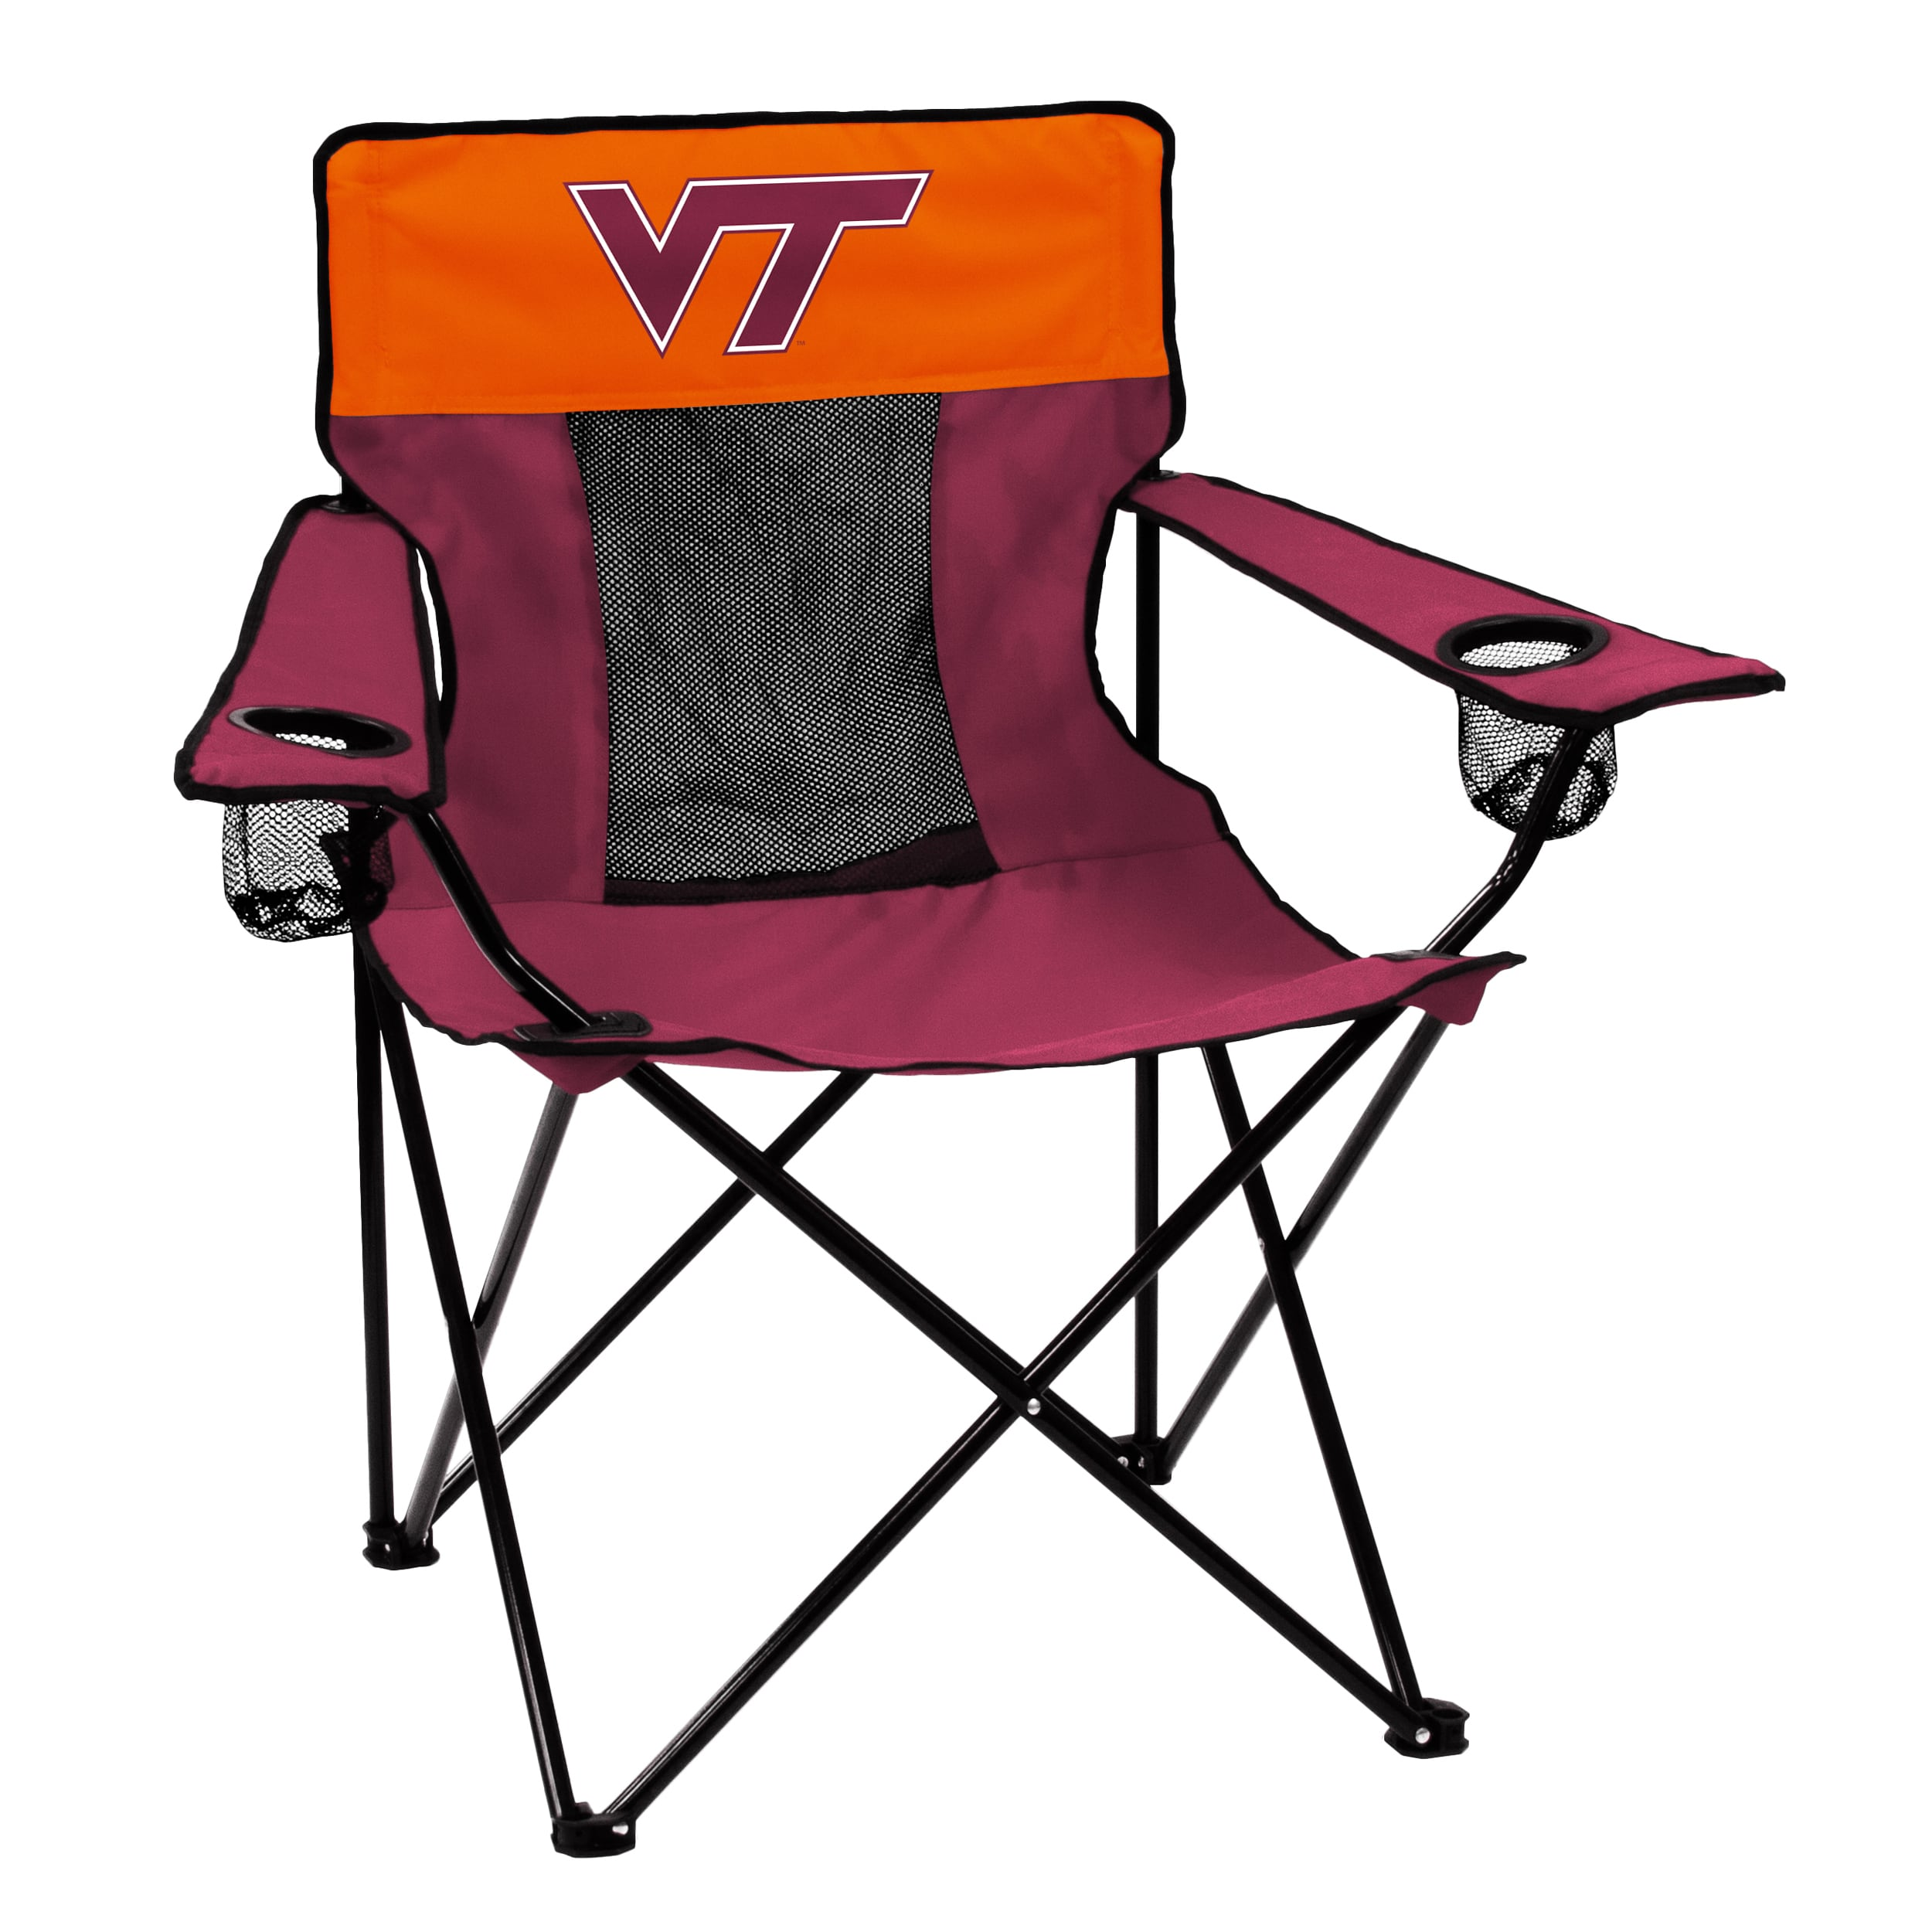 NCAA Virginia Tech Hokies Beach Chair